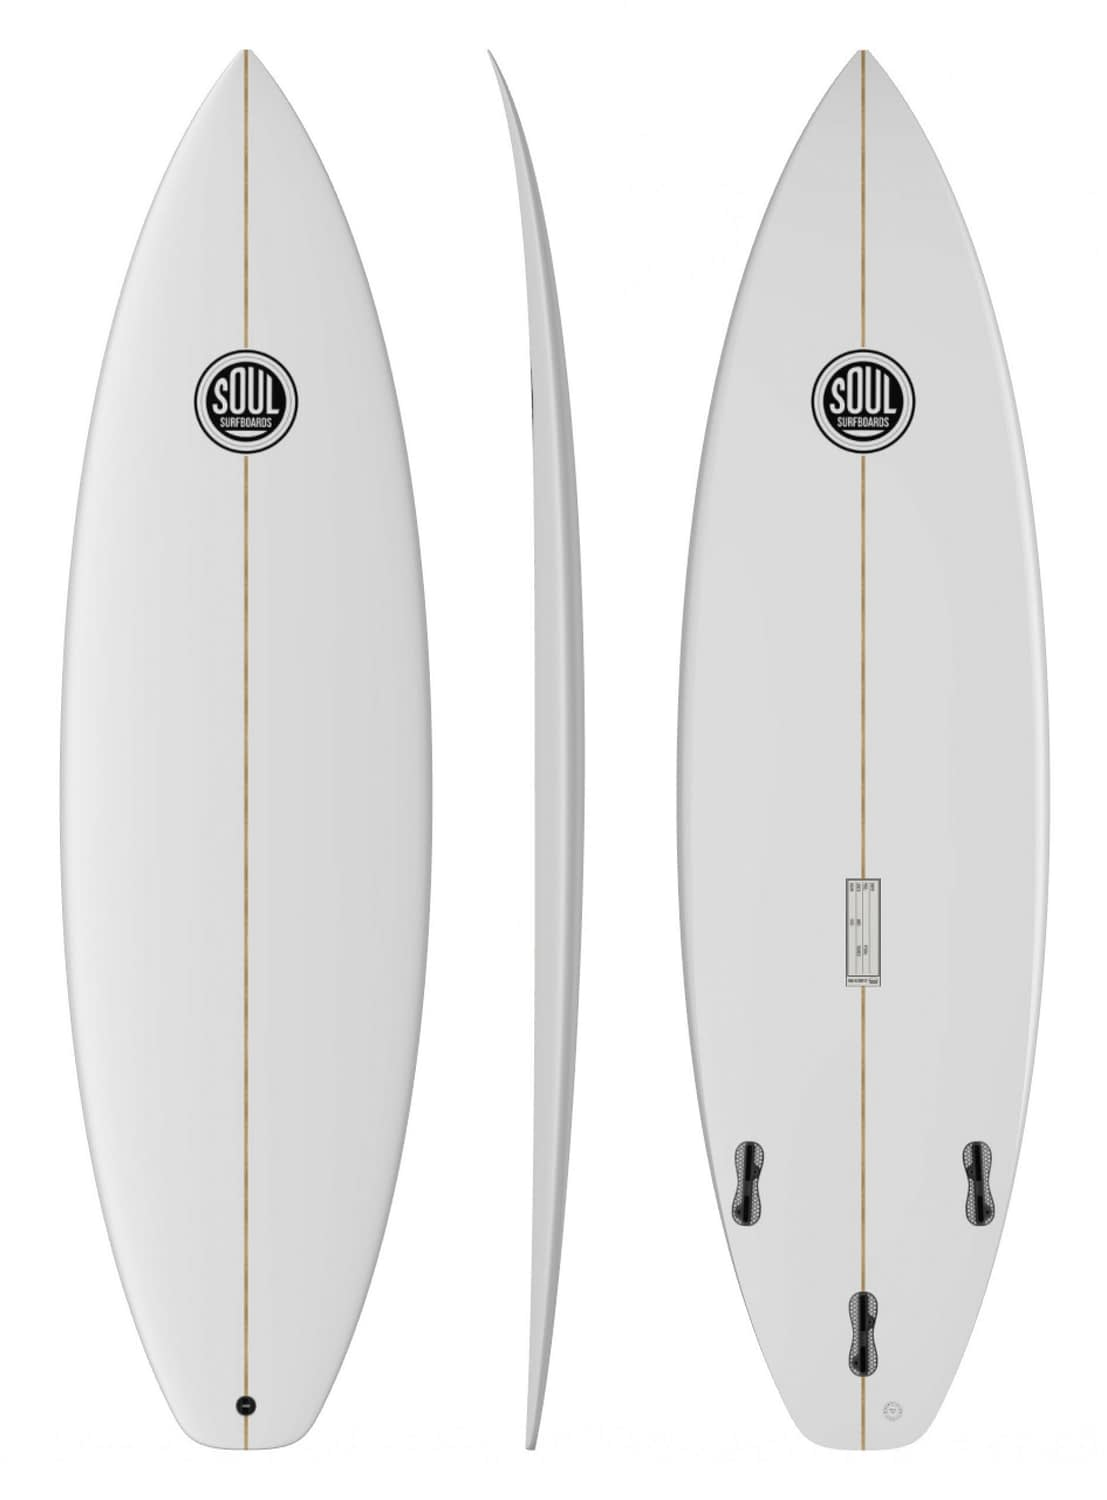 GTO I SOUL SURFBOARDS